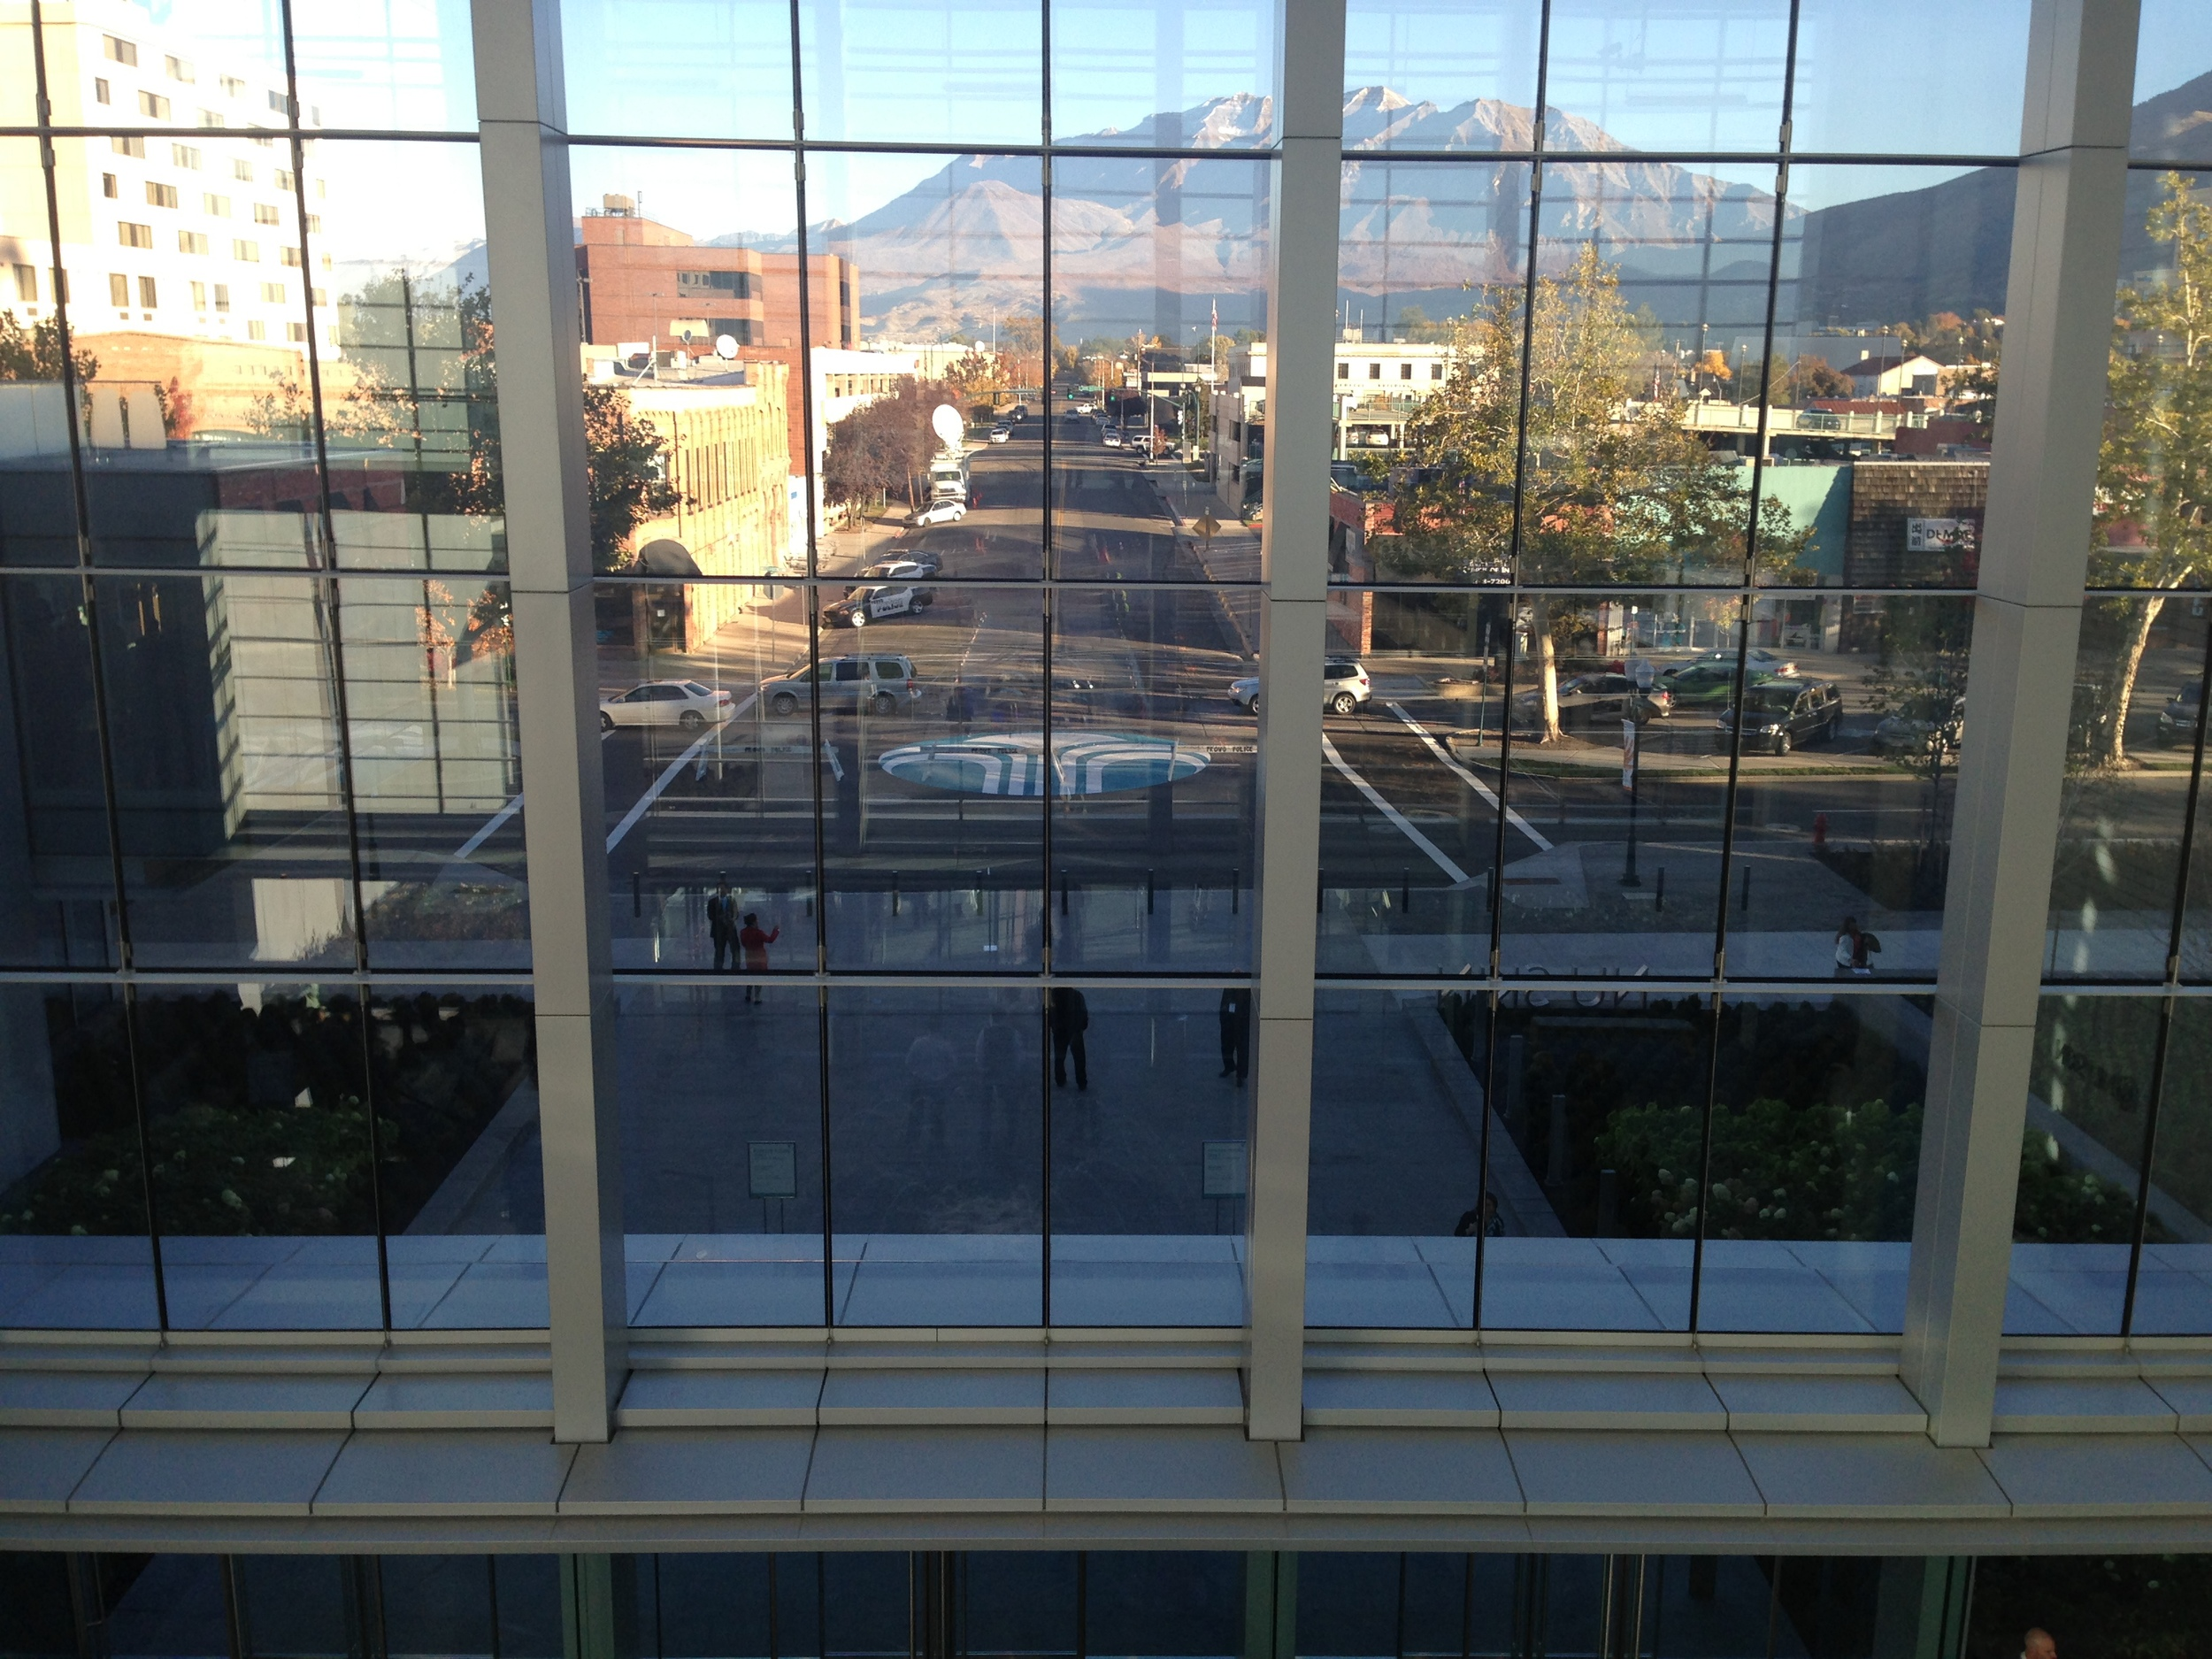 Looking out at the former intersection in front of the new Nu Skin Innovation Center in Provo - Nu Skin bought the street to build on it :-)